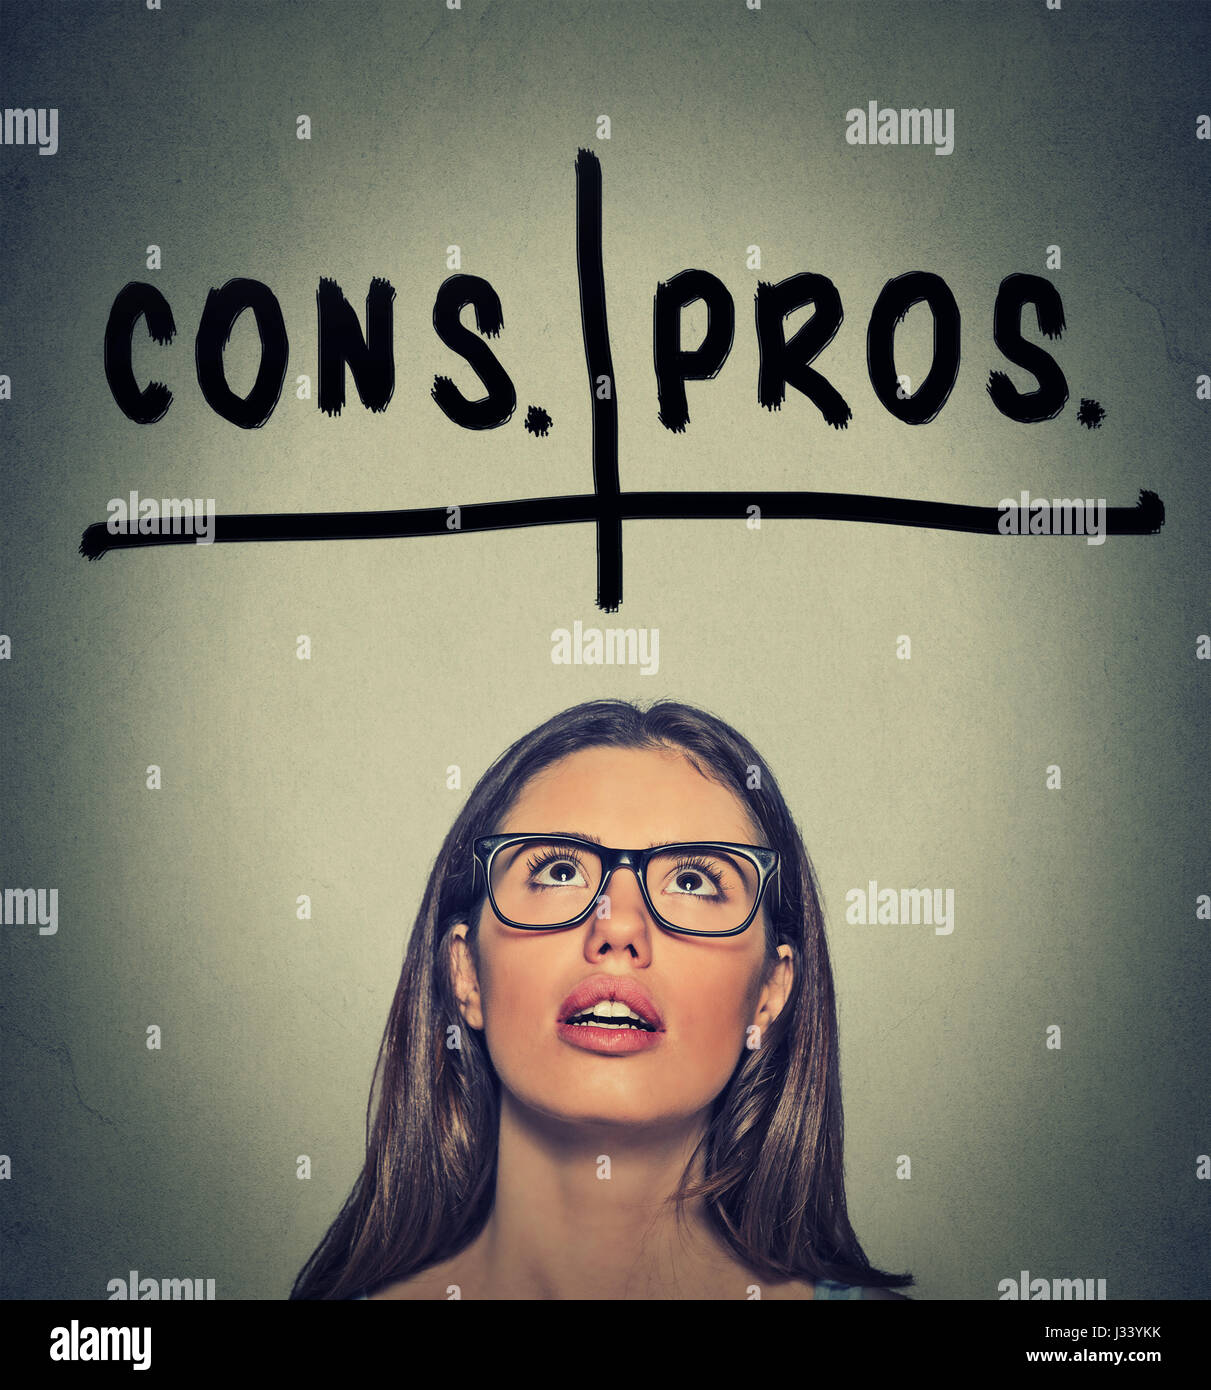 pros and cons, for and against argument concept. Young business woman with glasses looking up deciding isolated - Stock Image